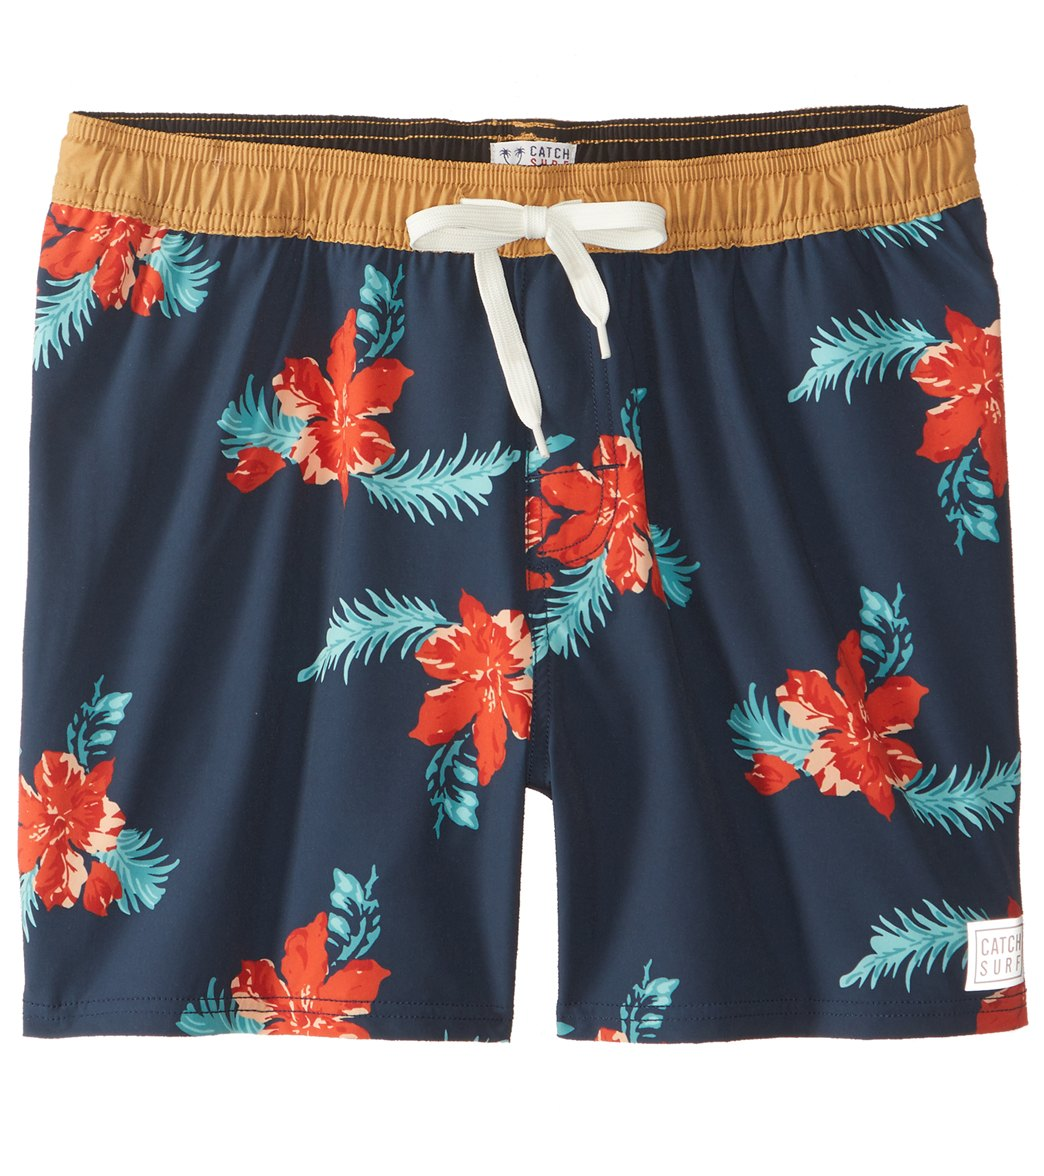 a3a0491161 Catch Surf Men's Perfect 10 Aloha Boardshort at SwimOutlet.com ...